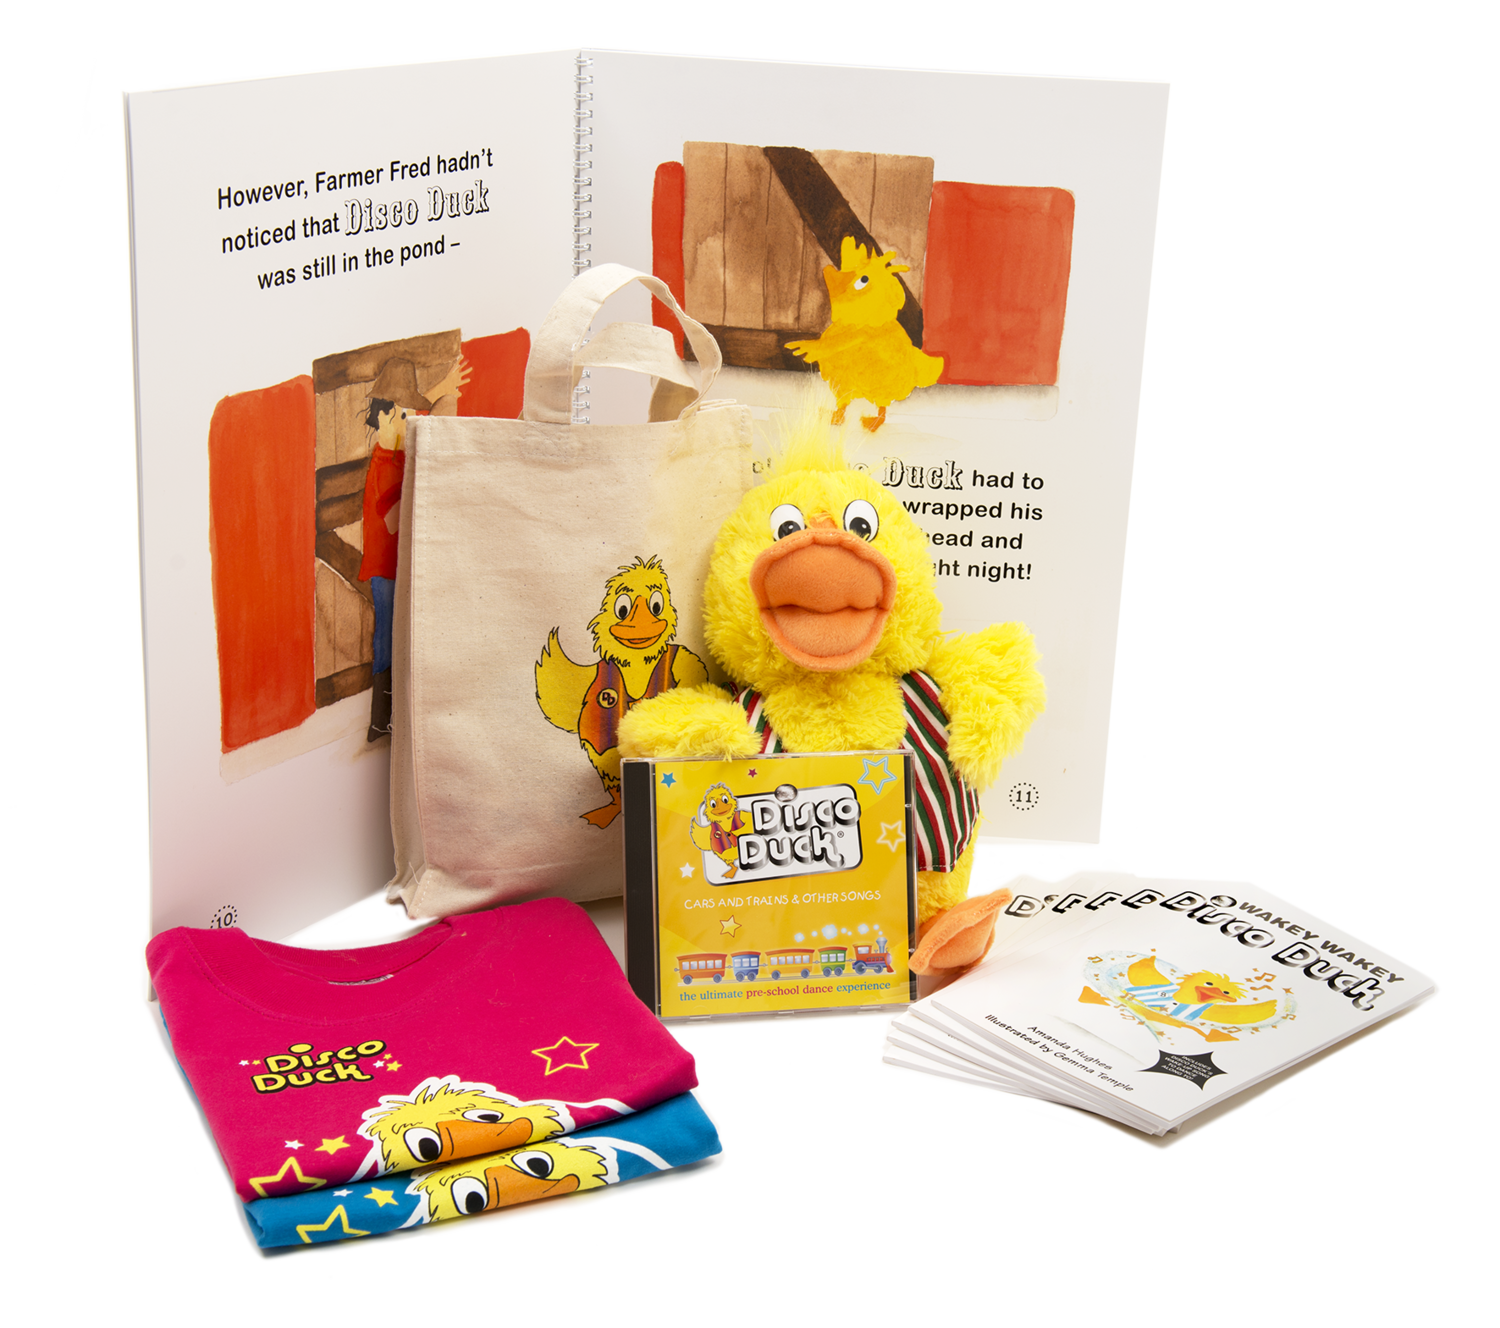 AWARD WINNING DISCO DUCK PRE-SCHOOL DANCE RESOURCES -  START YOUR OWN DISCO DUCK CLASS!  Terms and conditions apply, see below.